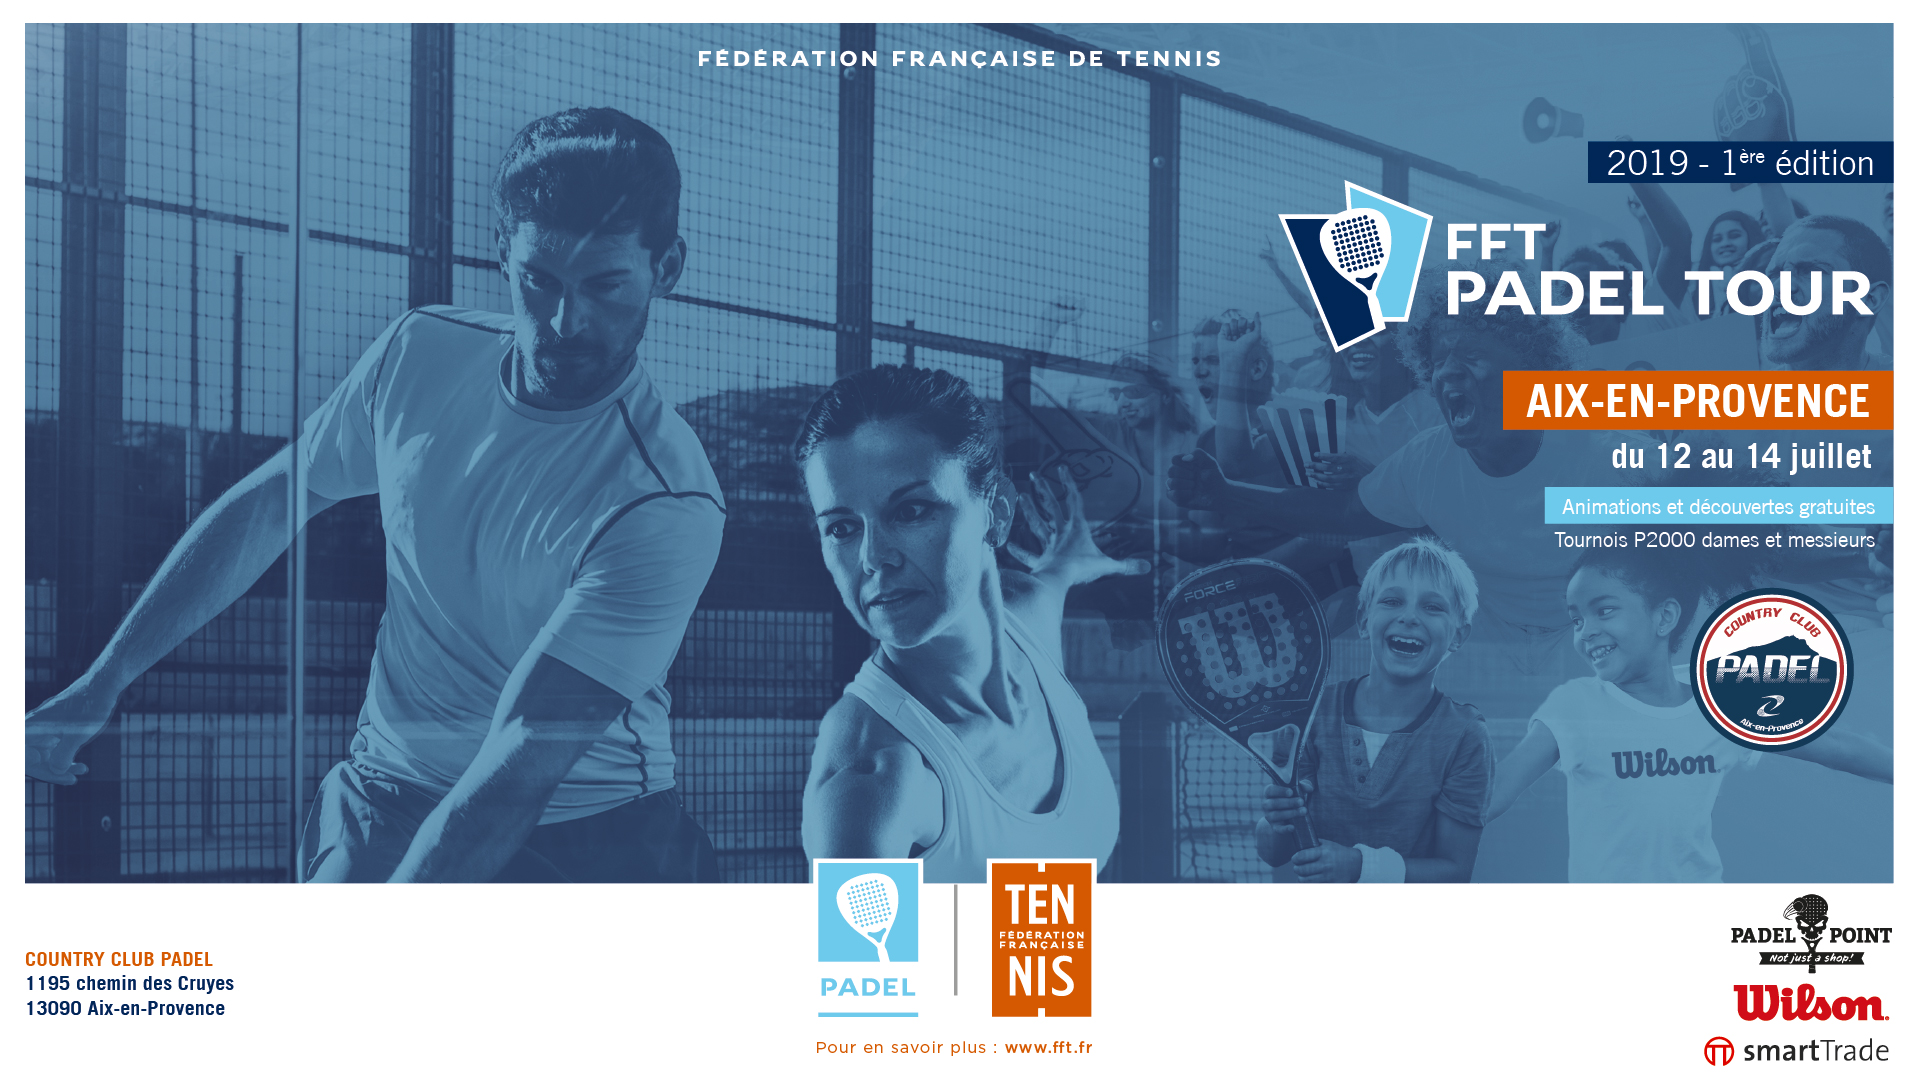 The most beautiful points of the FFT PADEL TOUR Aix-en-Provence